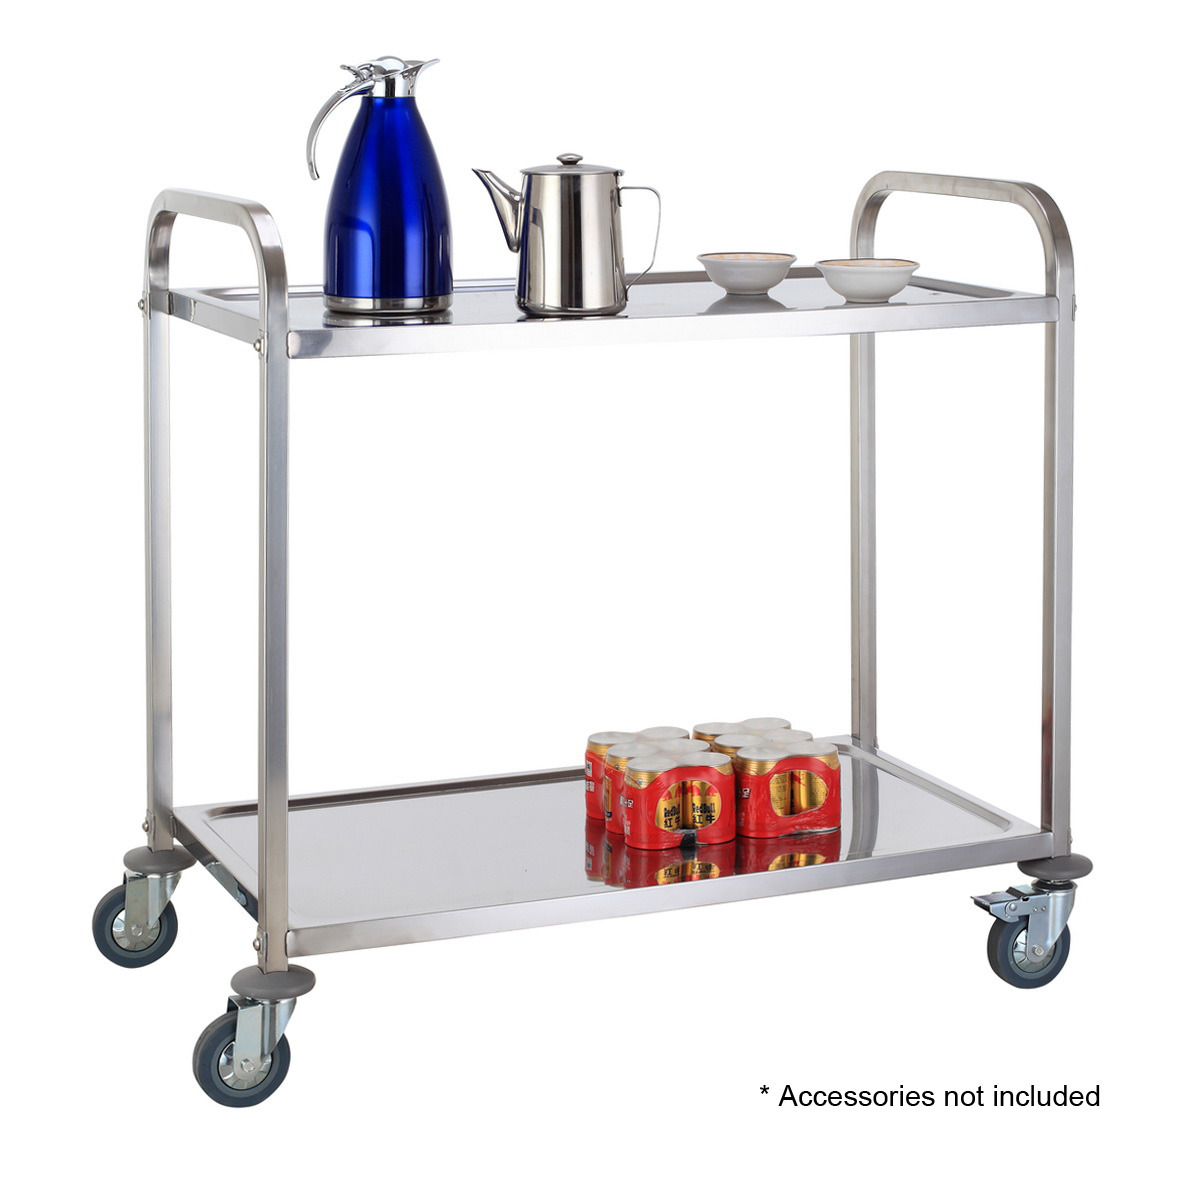 2 TIER STAINLESS STEEL KITCHEN DINING TROLLEY SERVING UTILITY CART